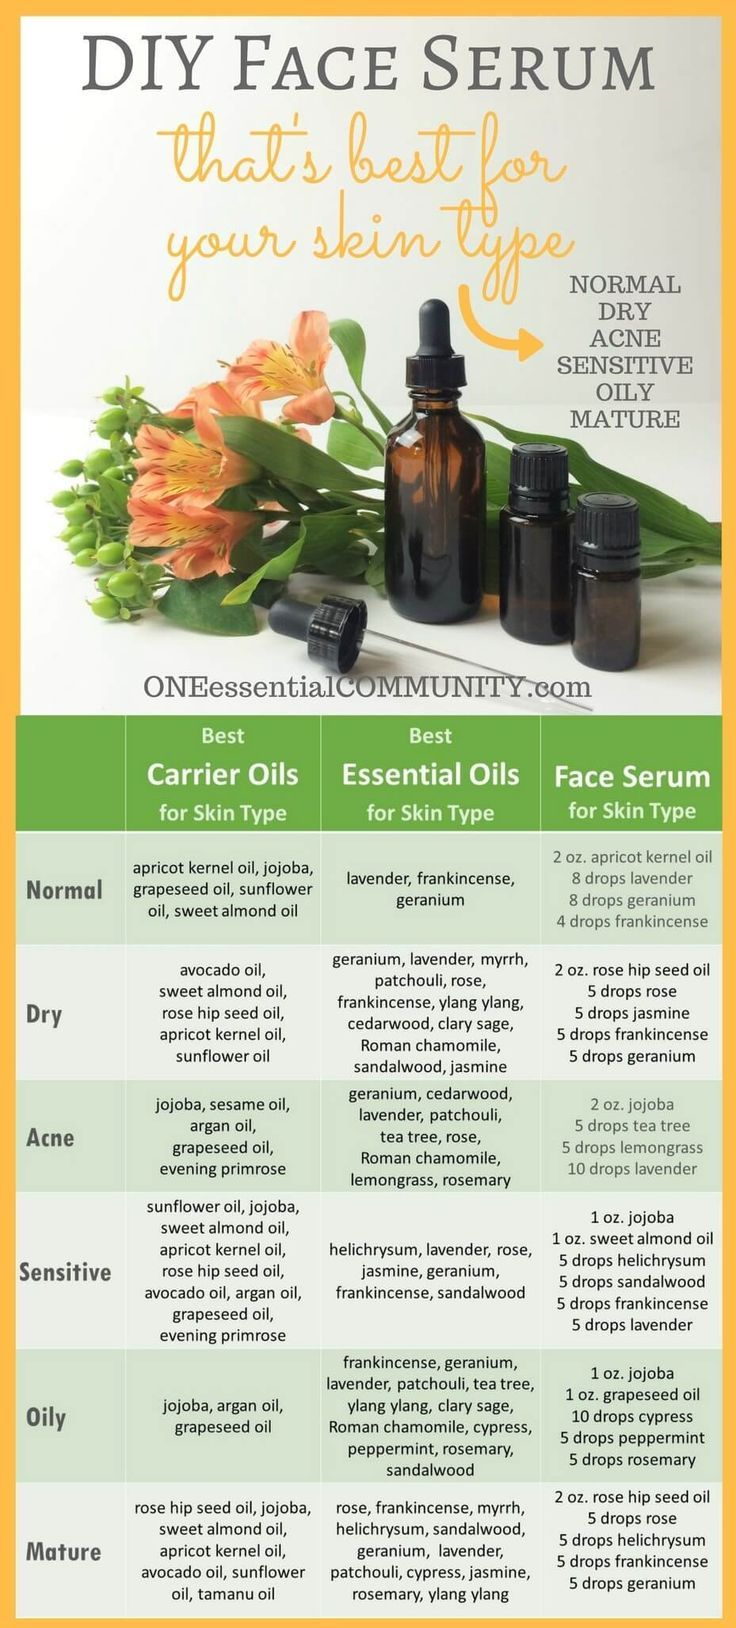 Face serum recipes for dry acne sensitive oily mature and easy 2 ingredient diy face serum with essential oil love that the recipe can solutioingenieria Choice Image